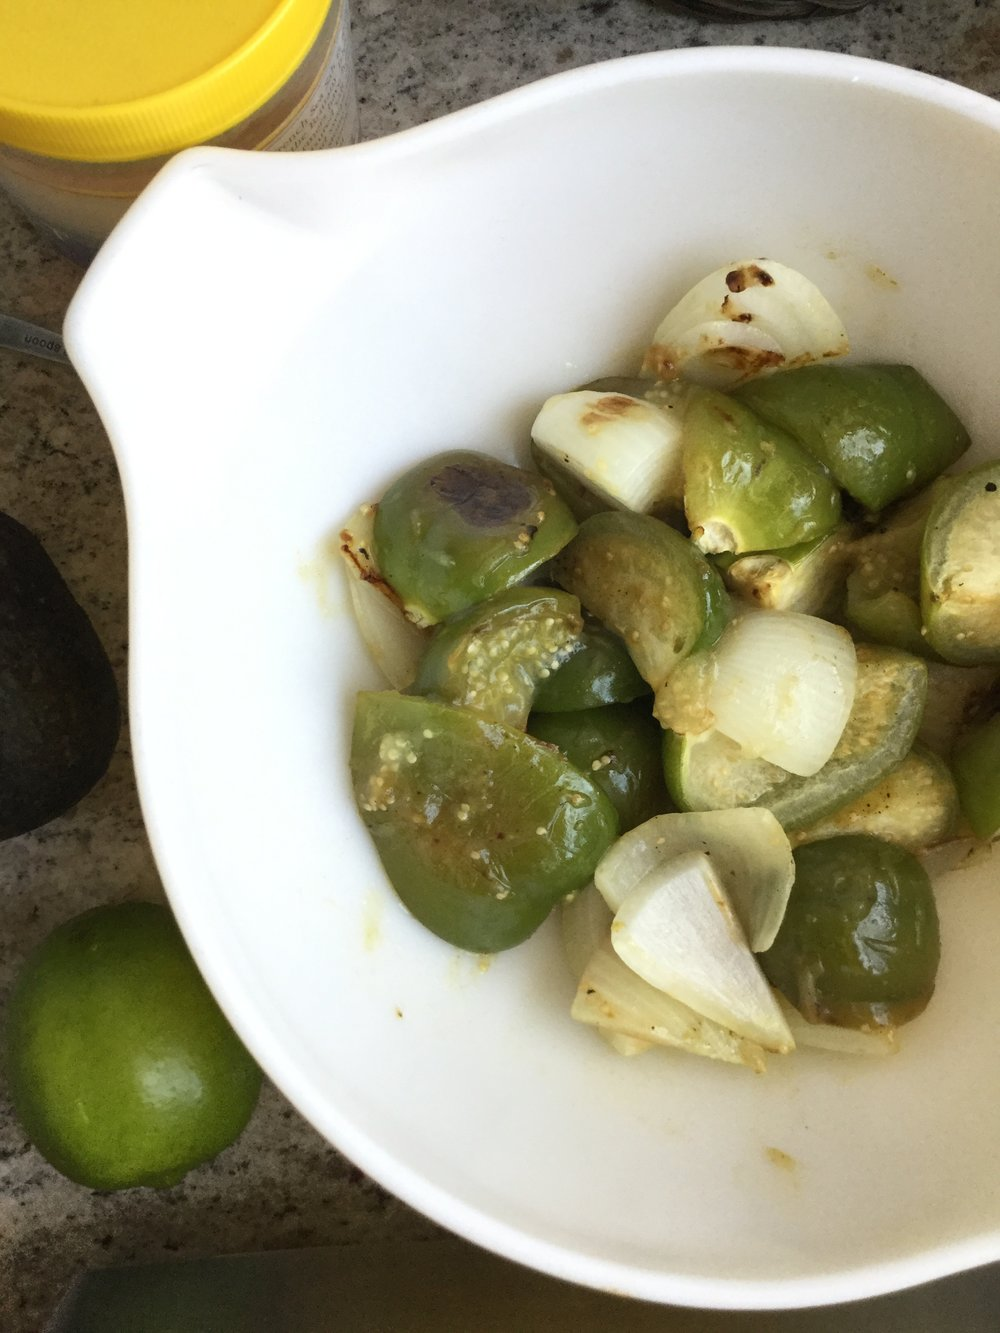 How To Make: - Roasted Tomatillo Salsa with Avocado